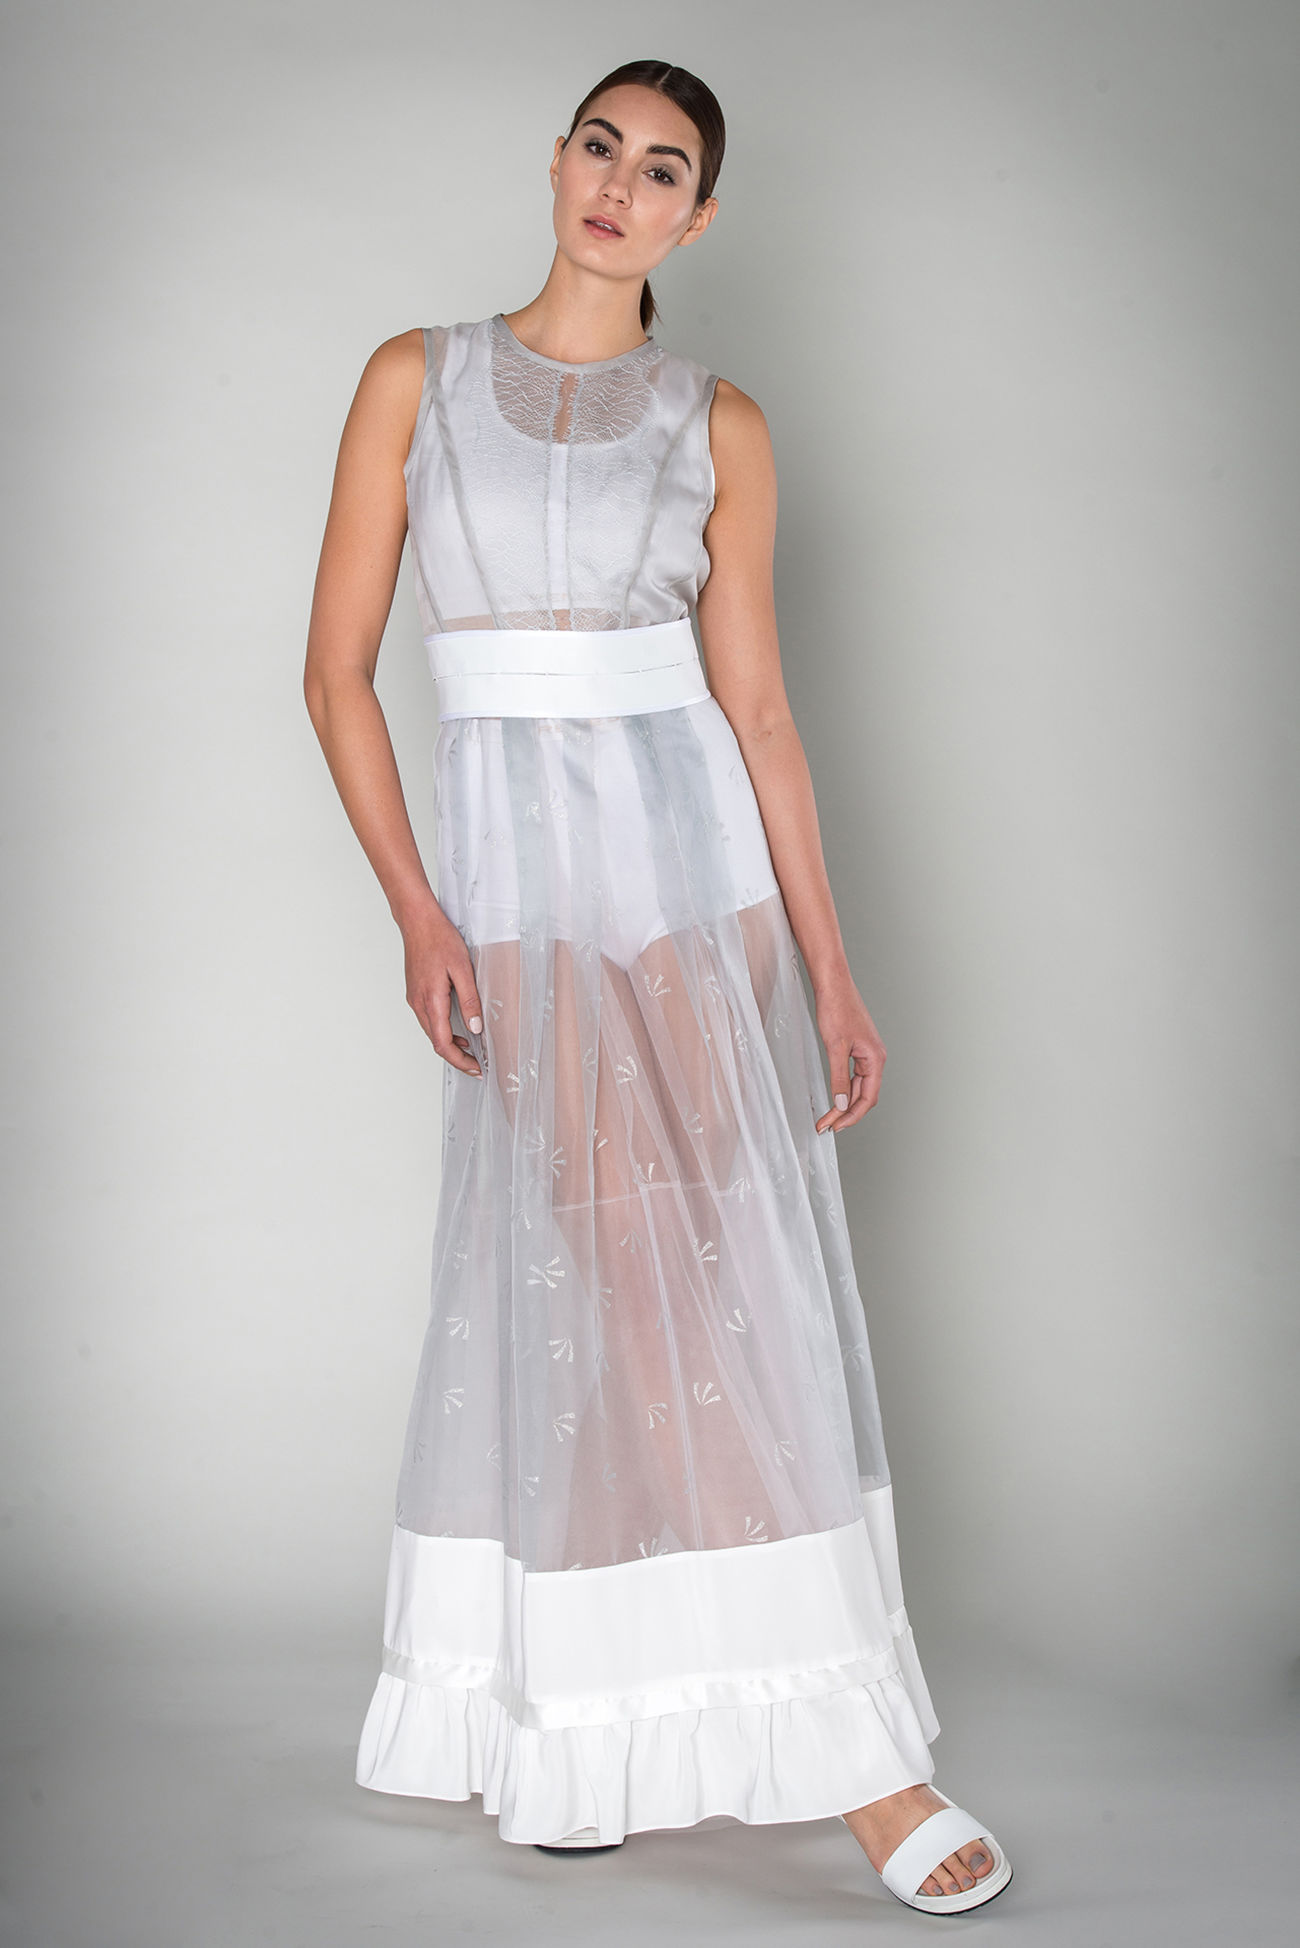 Dress made of silk organza